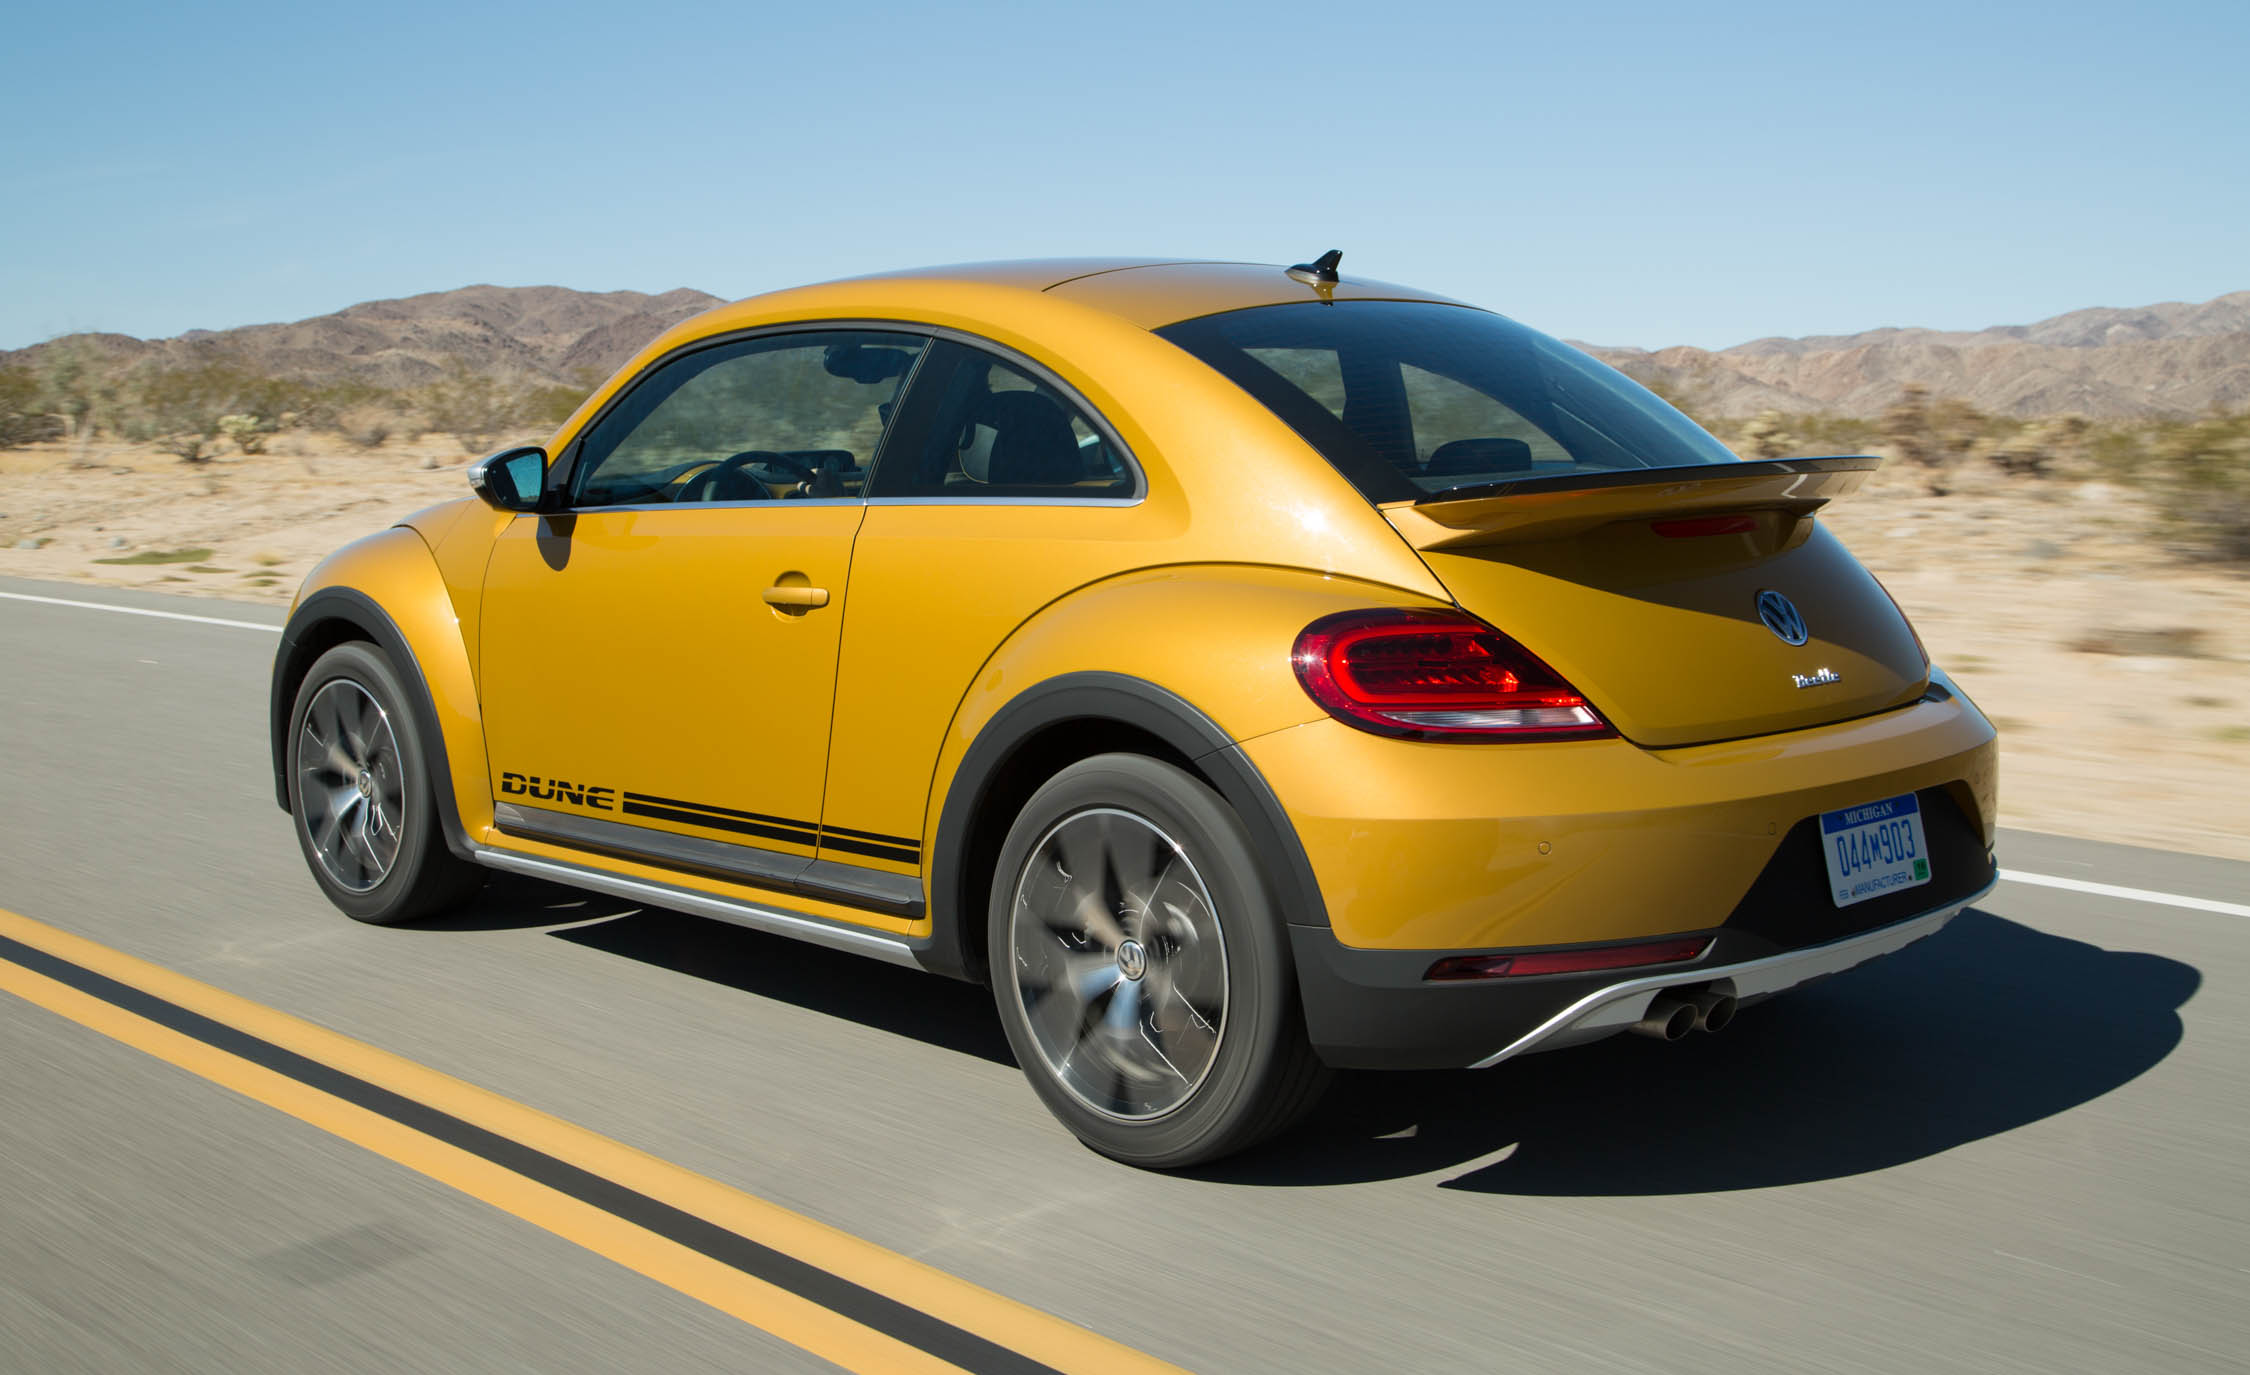 2016 Volkswagen Beetle Dune Coupe Rear Side (View 29 of 32)